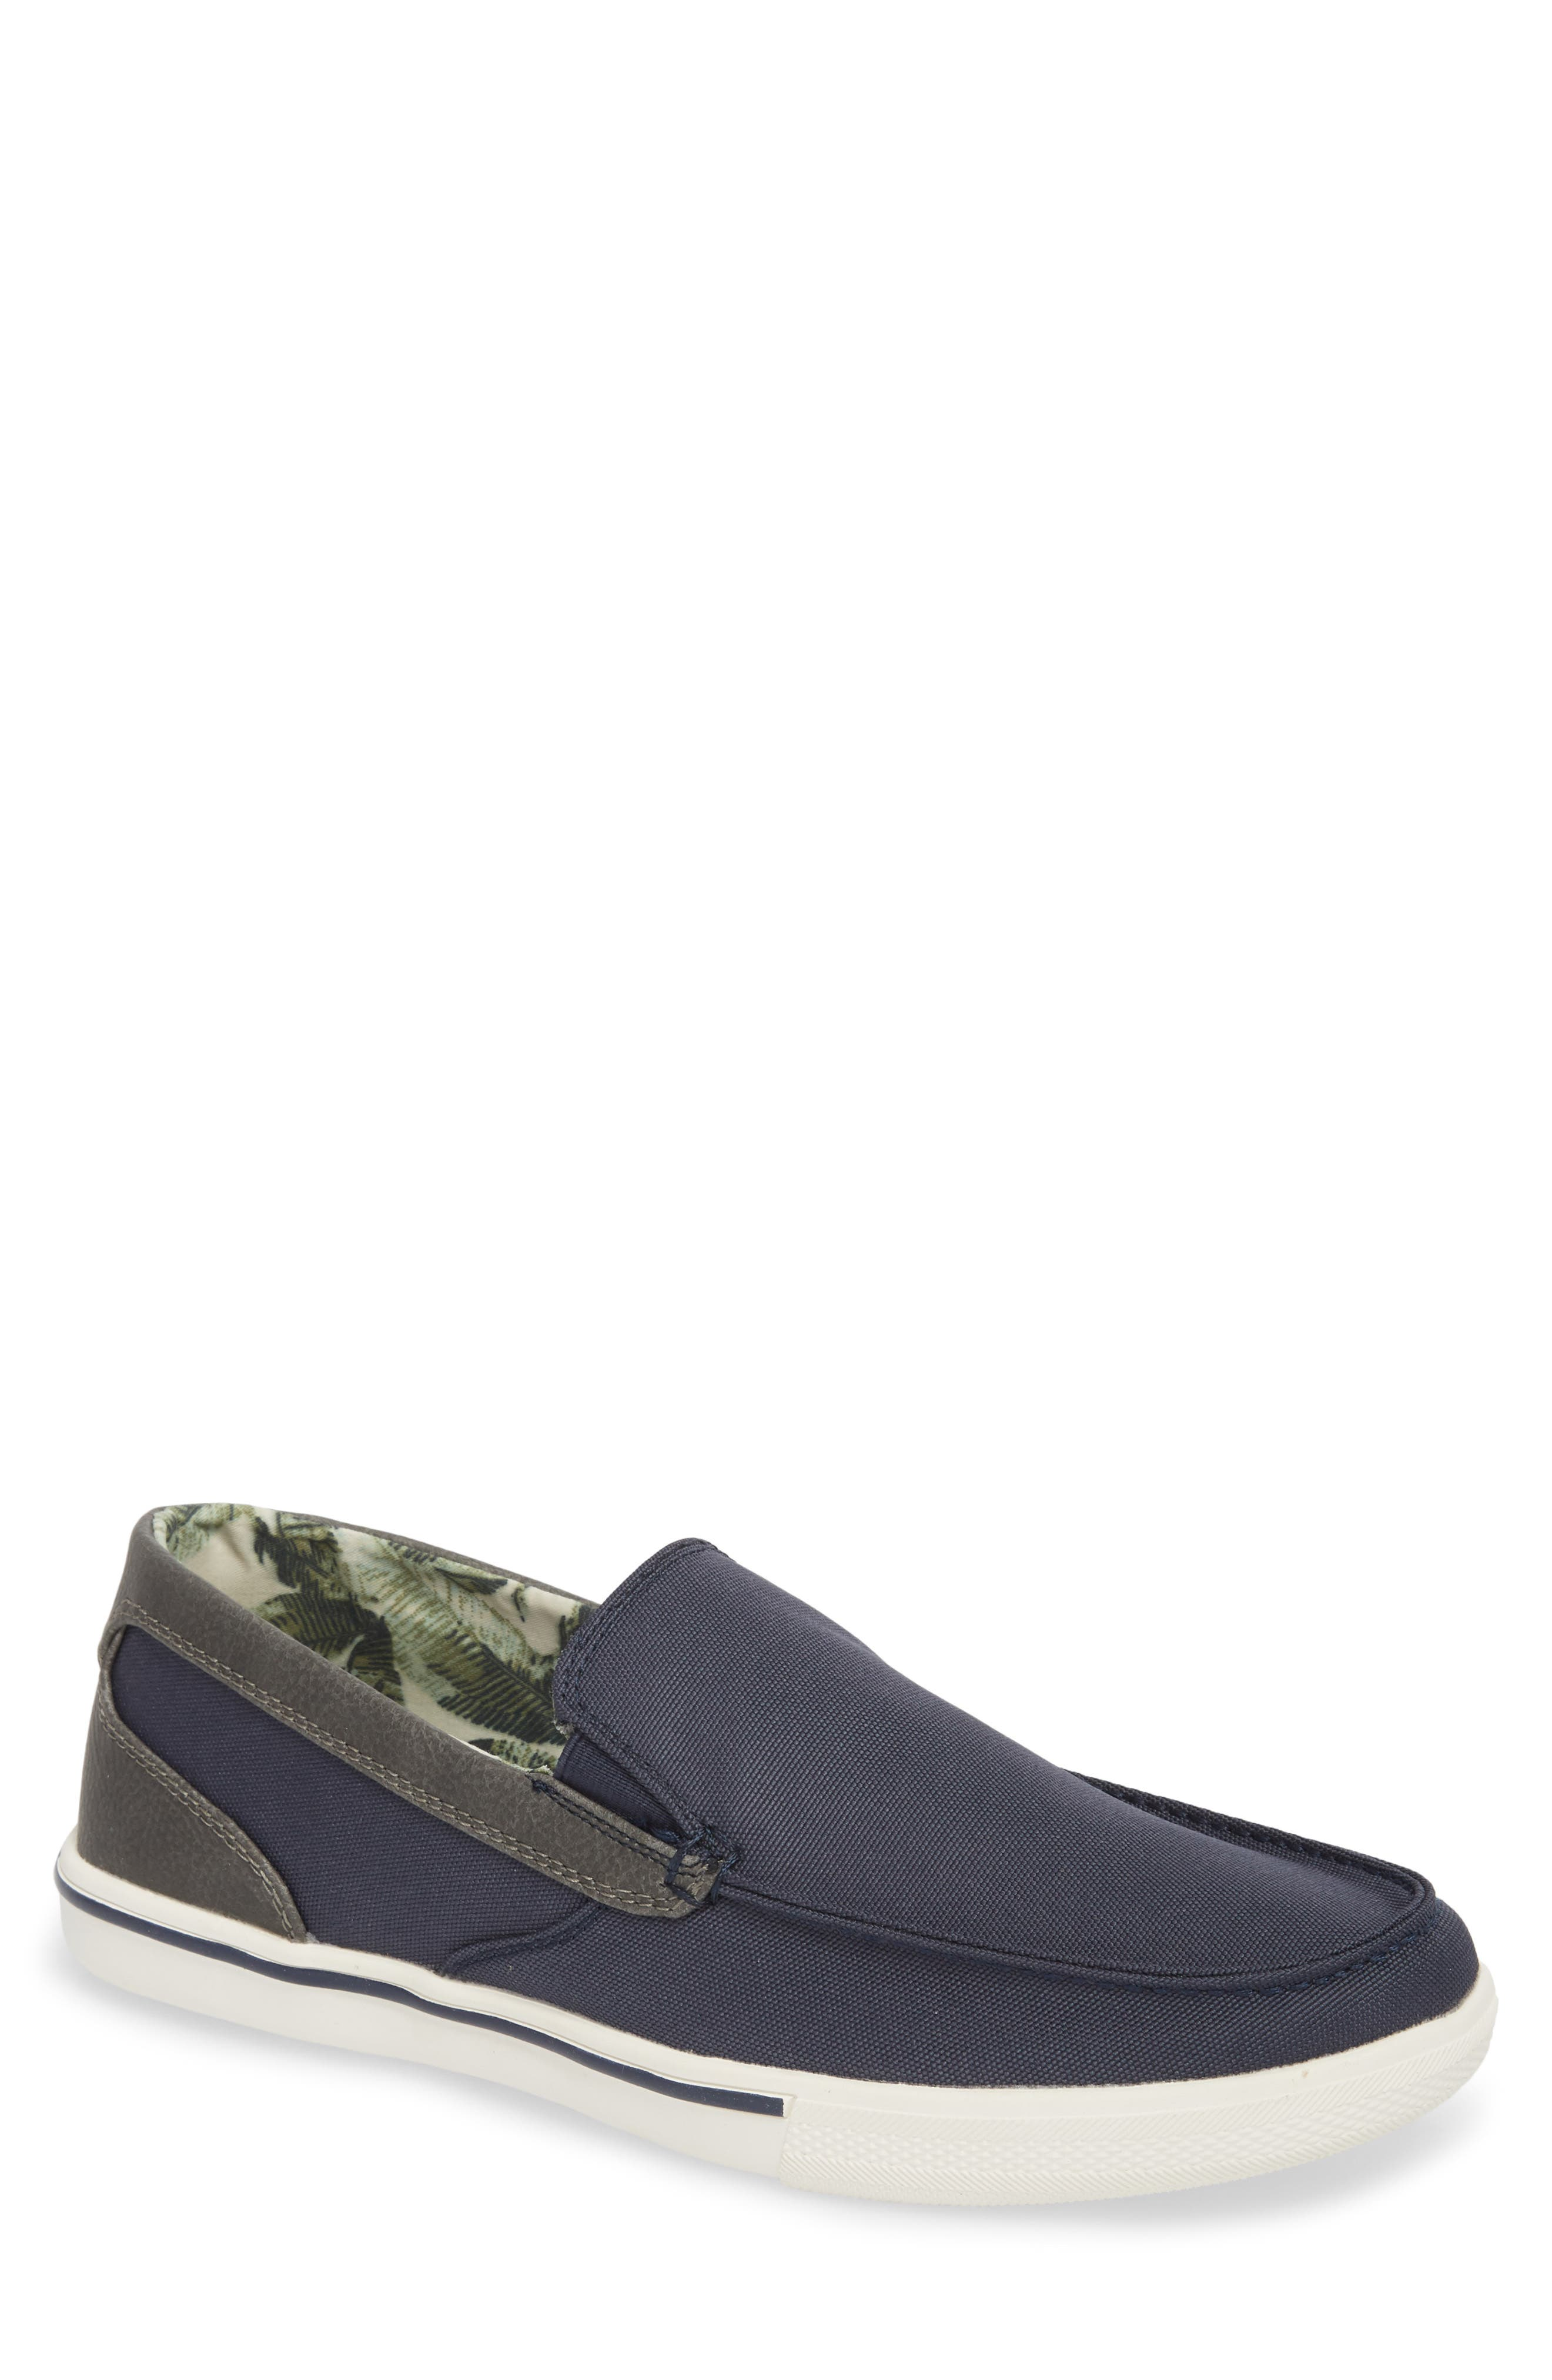 Calderon Loafer,                         Main,                         color, Navy Canvas/ Leather